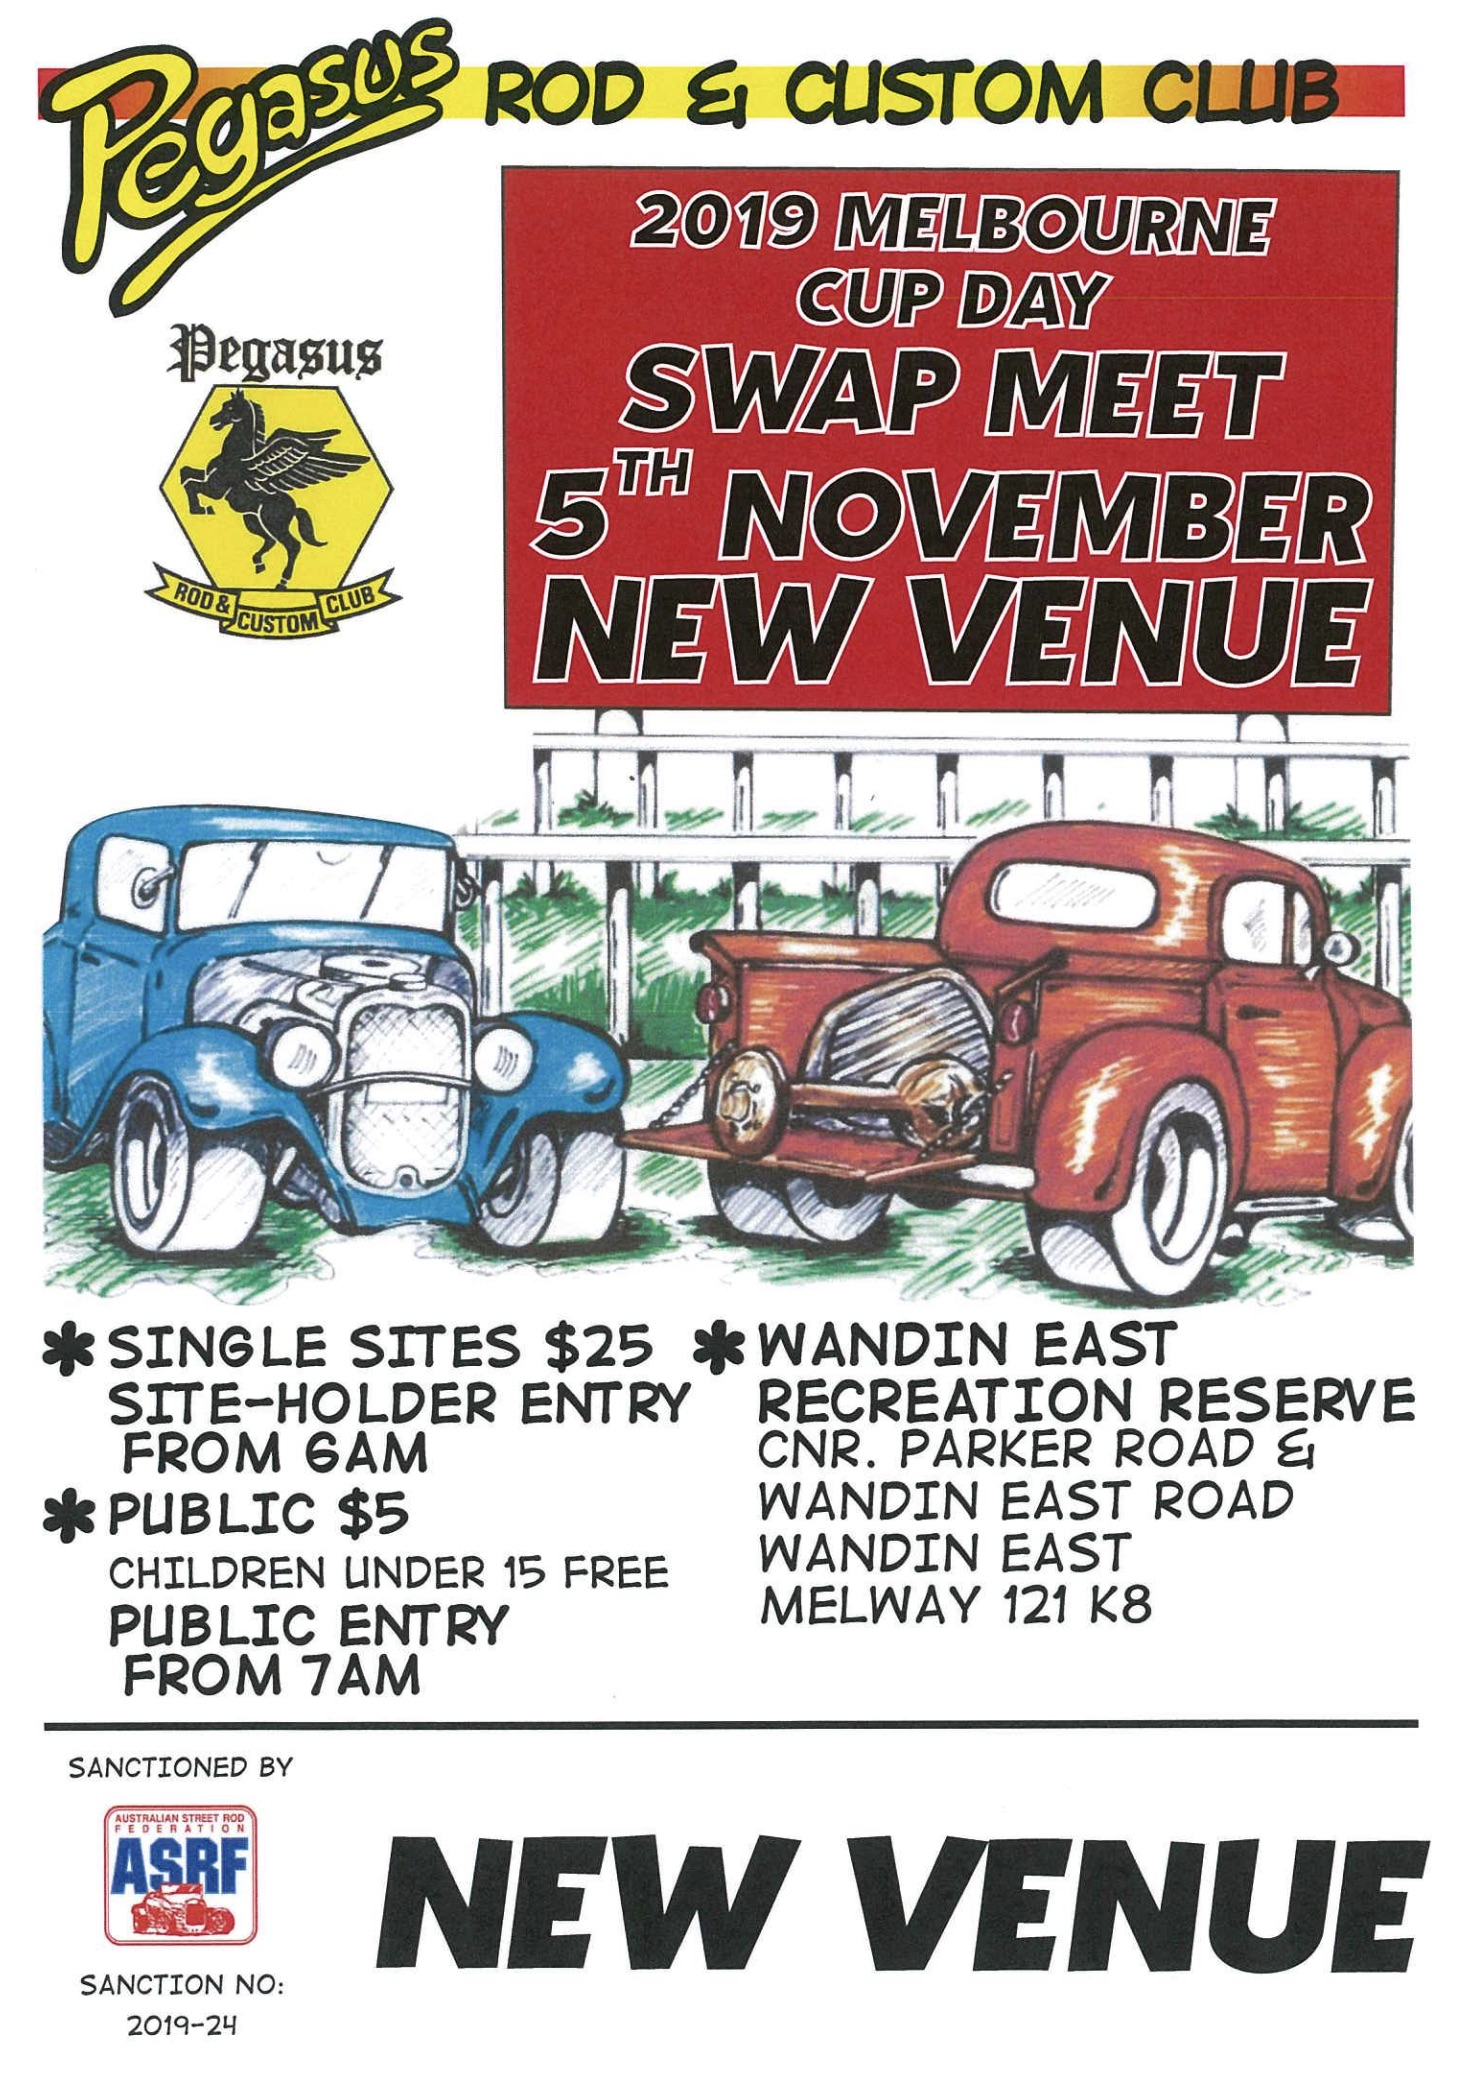 Pegasus Rod & Custom Club Swapmeet 2019 Melbourne CUP @ Wandin East Recreation Reserve | Wandin East | Victoria | Australia